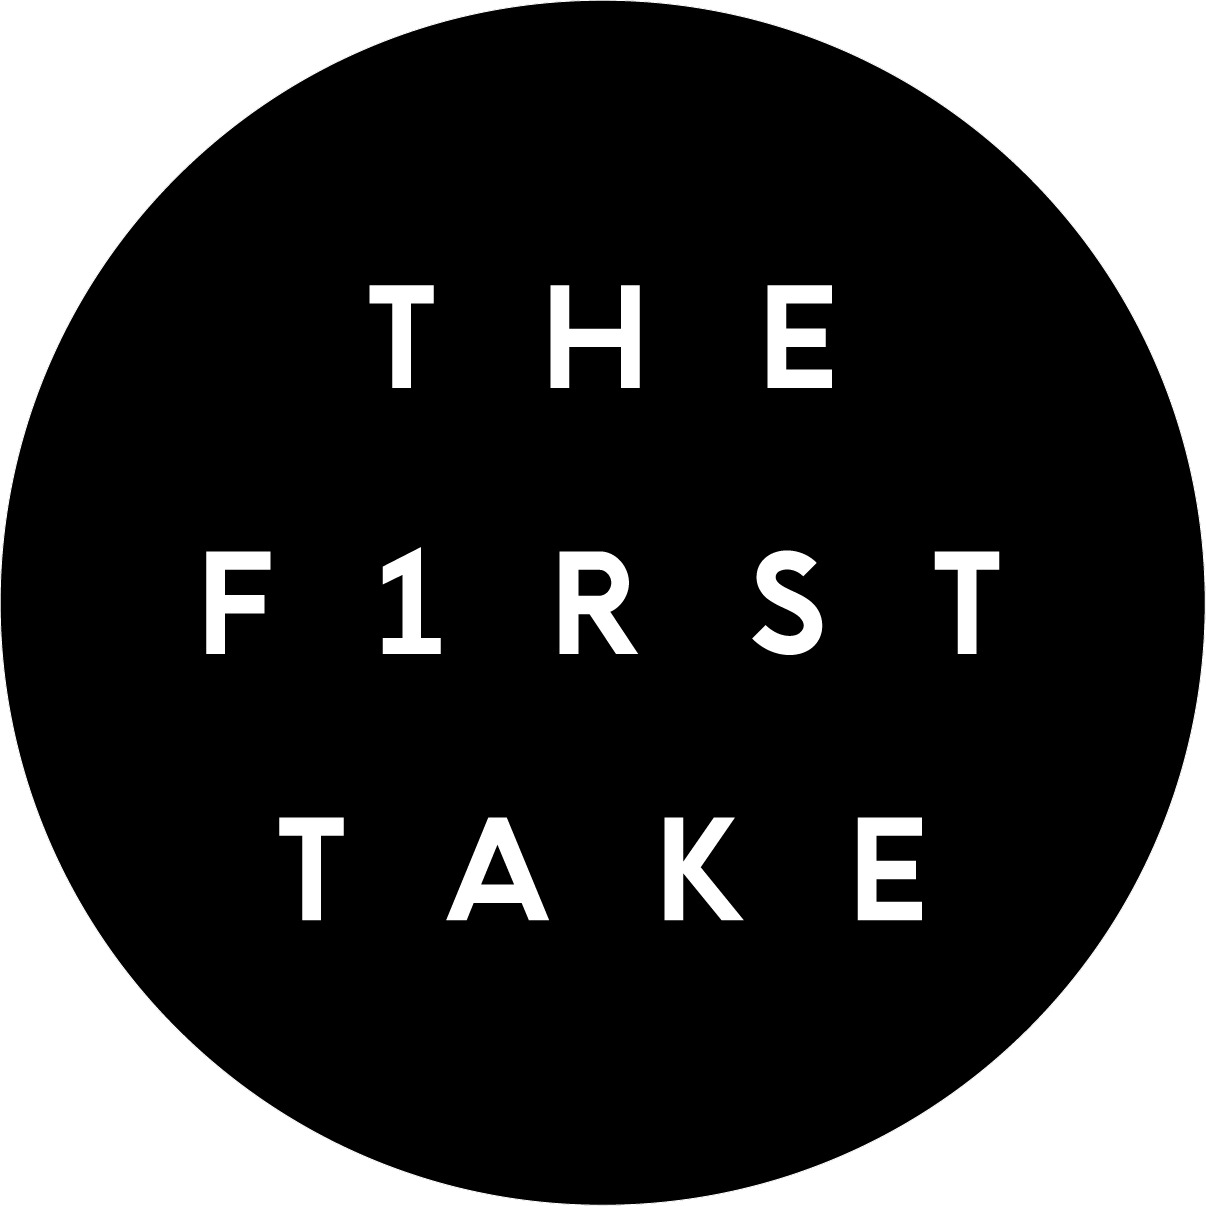 YouTubeチャンネル「THE FIRST TAKE」ロゴ